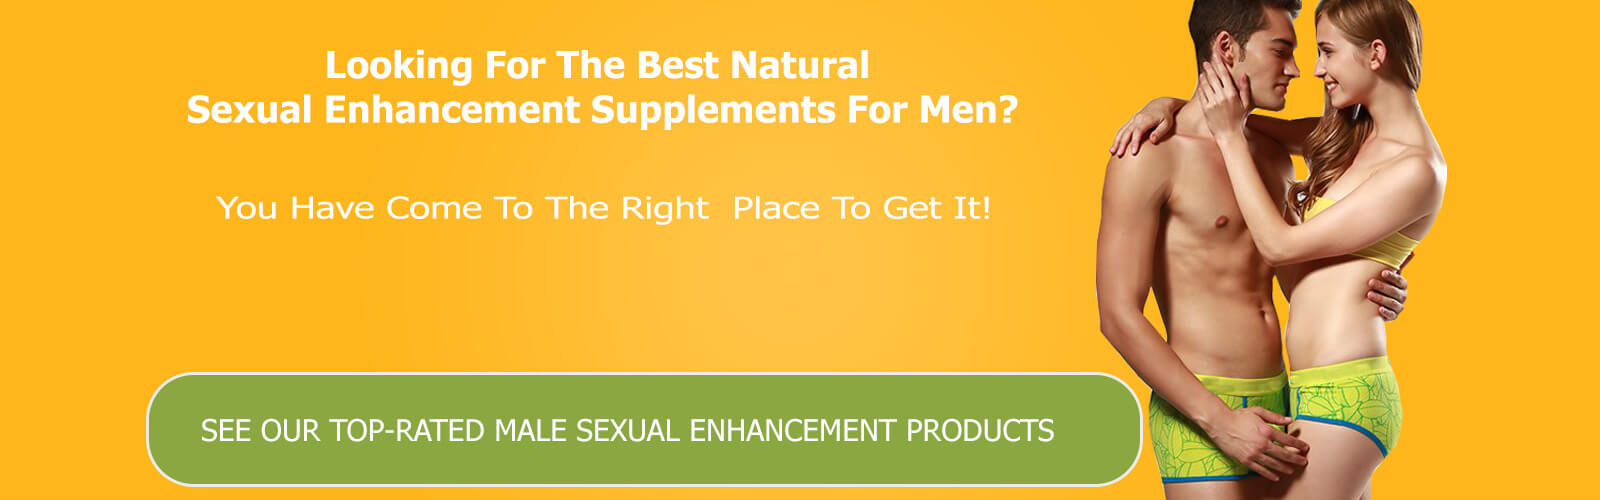 Herbal Male Supplements